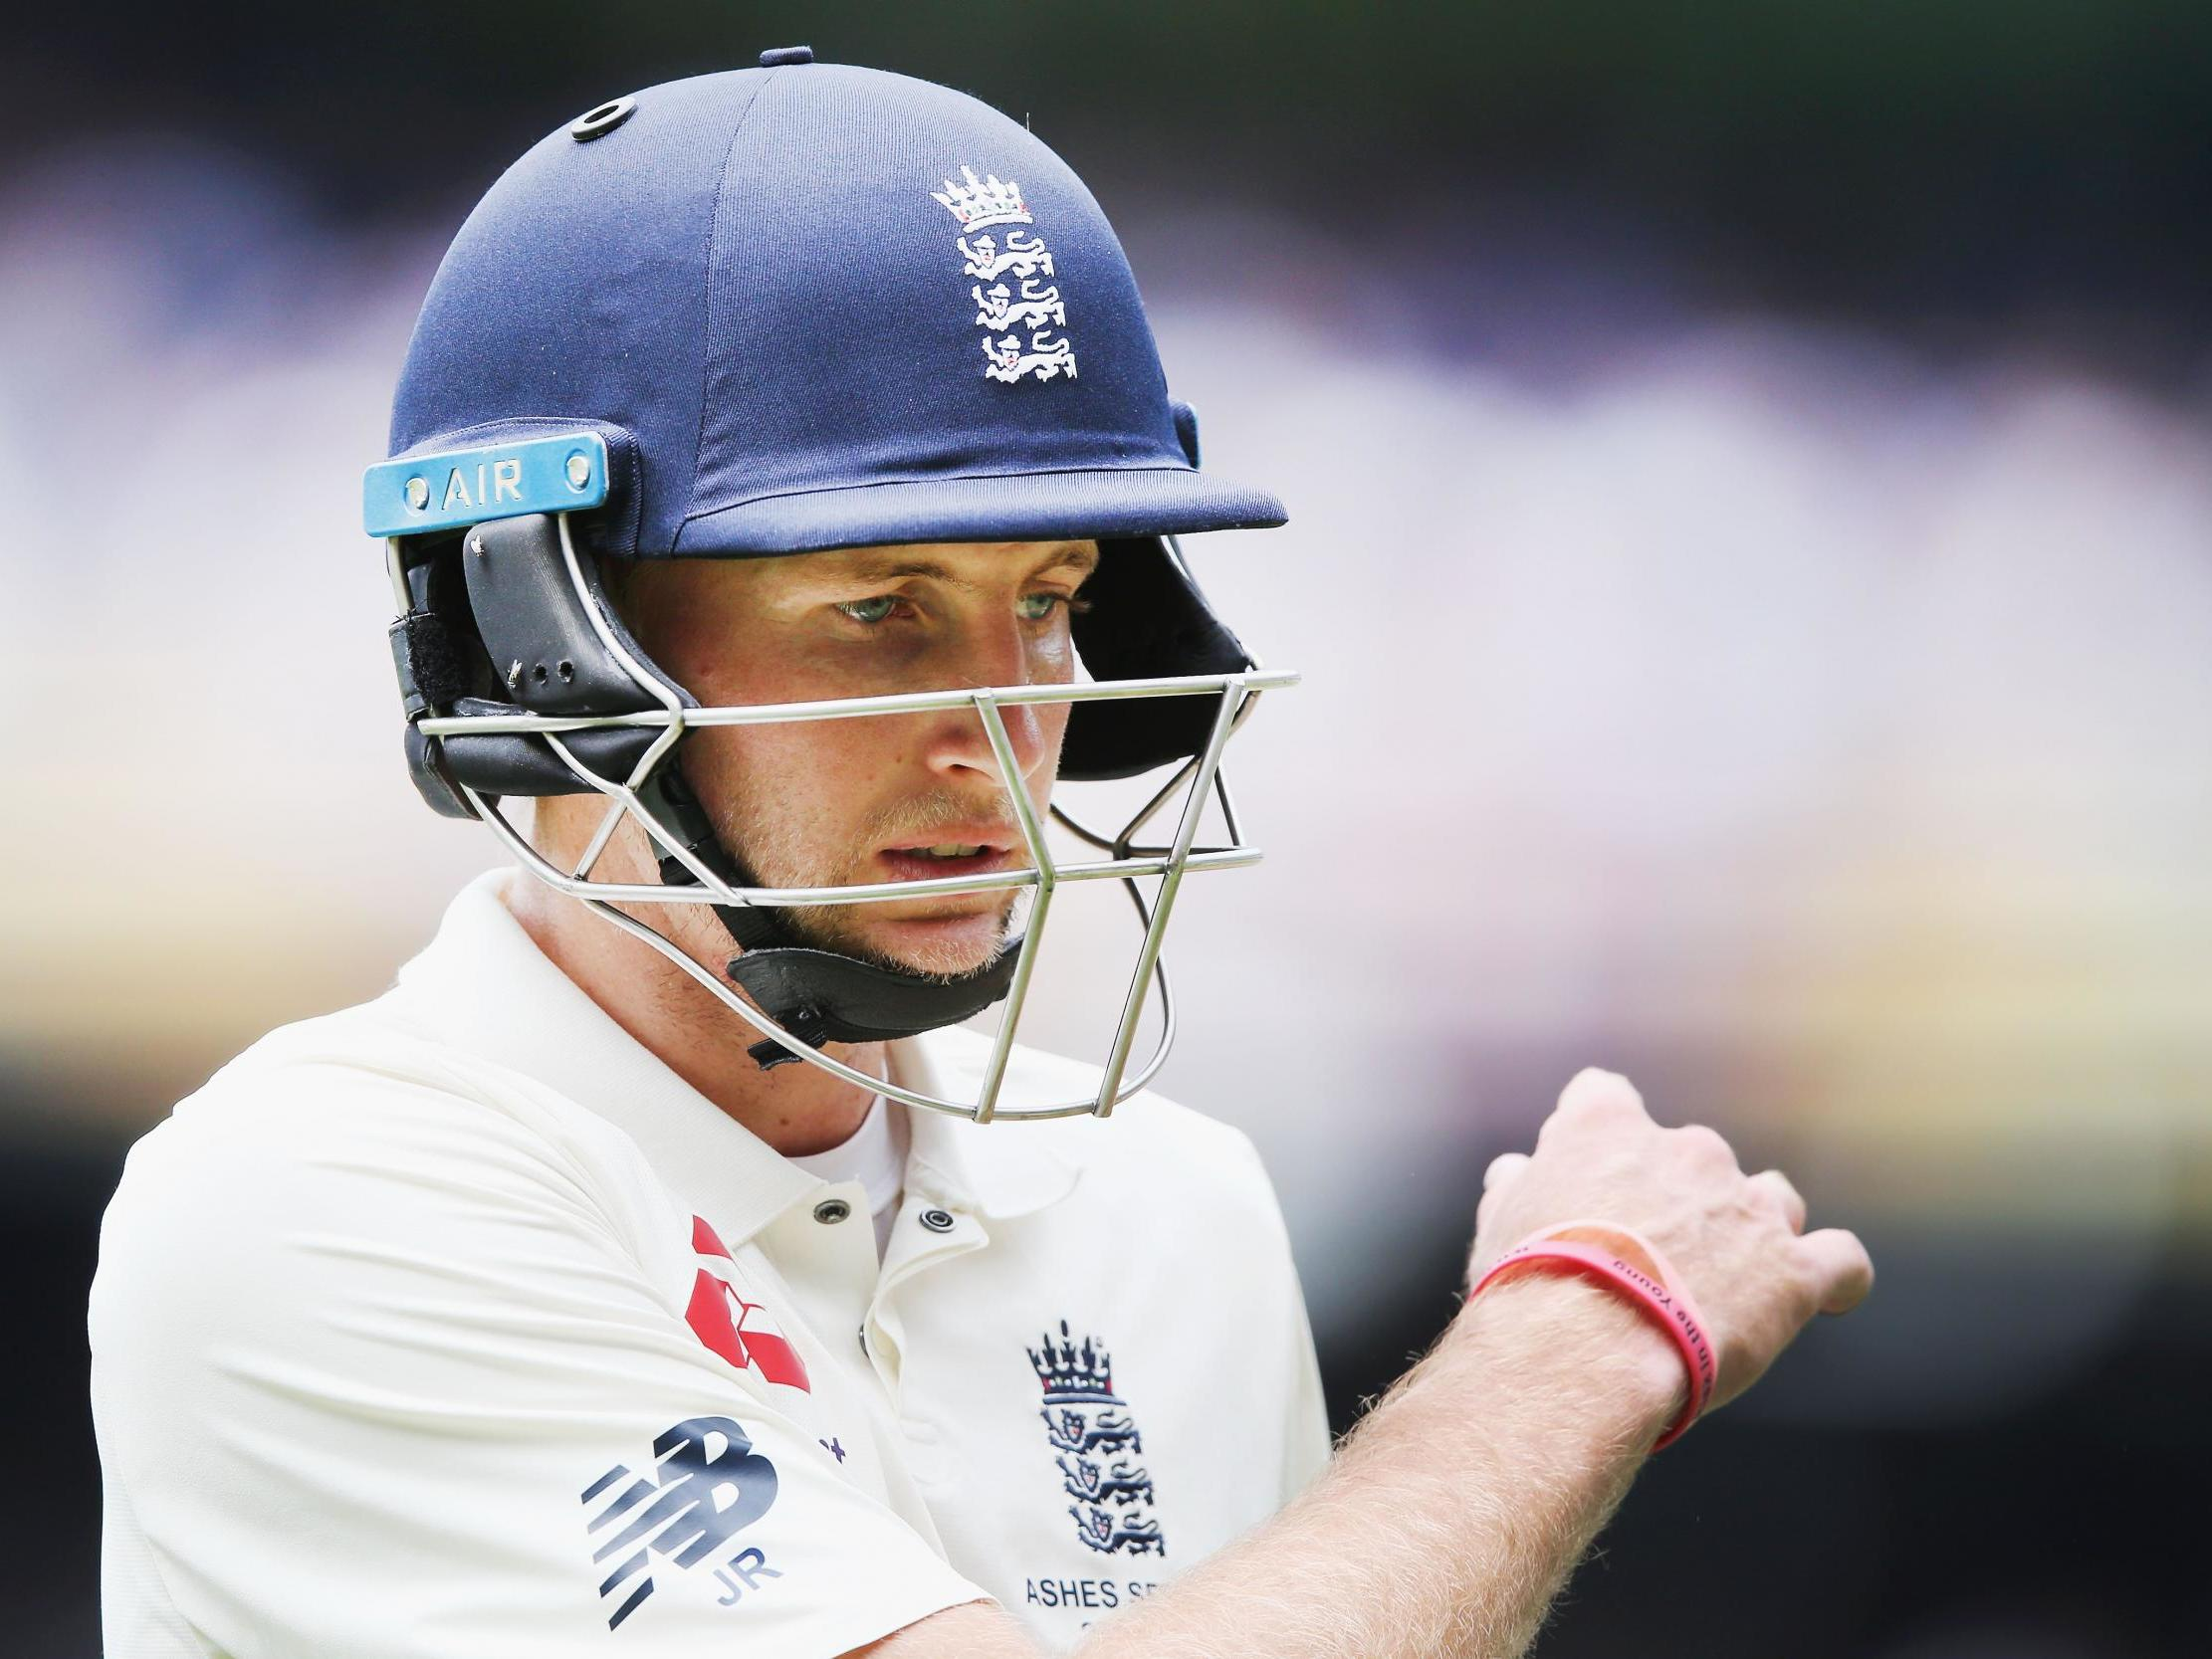 The Ashes 2019: Test dates and times, TV channel info and